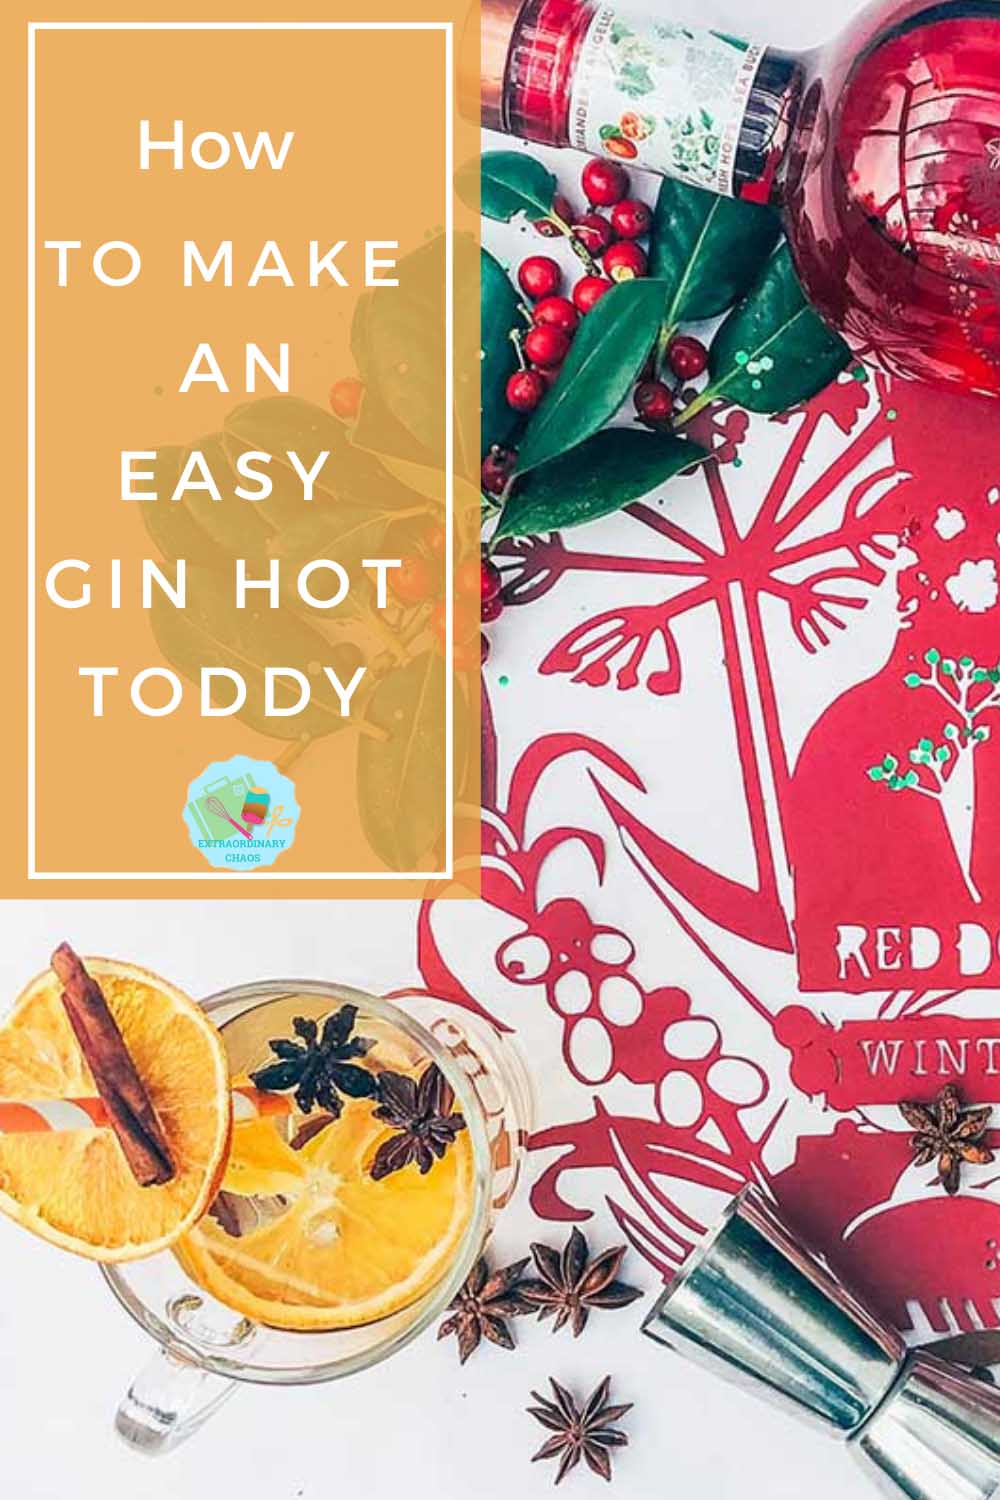 How to make an easy gin hot toddy